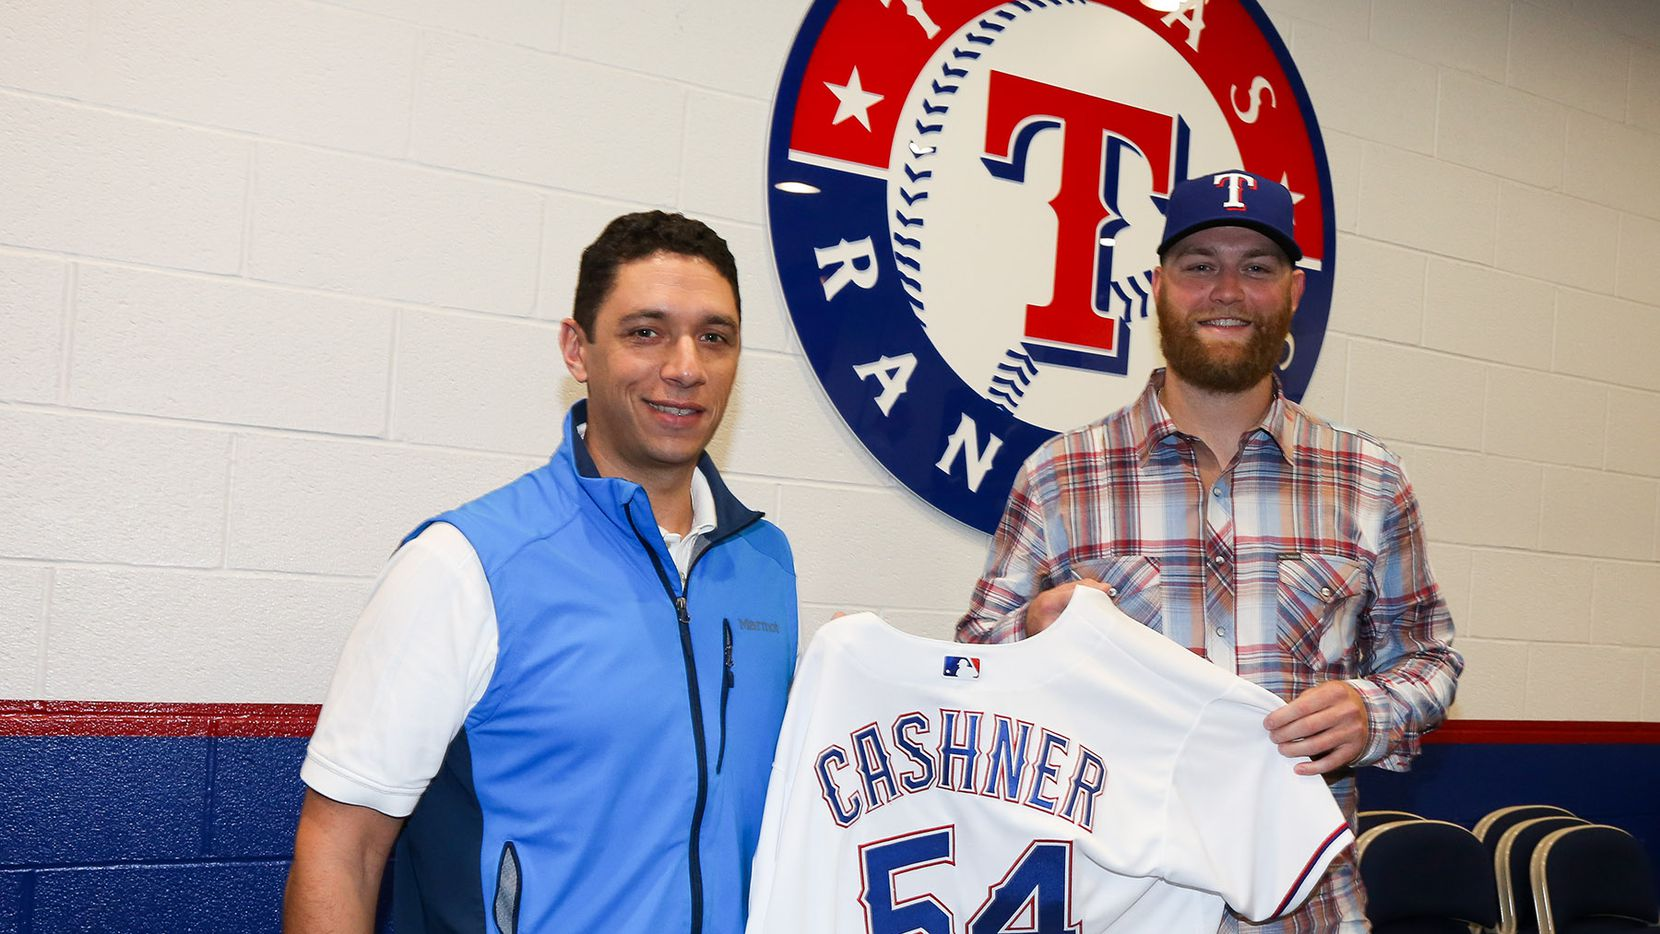 Arlington, TX - The Texas Rangers announce signing of RHP Andrew Cashner at Globe Life Park in Arlington on November 21, 2016.  (Photo by Kelly Gavin/Texas Rangers)